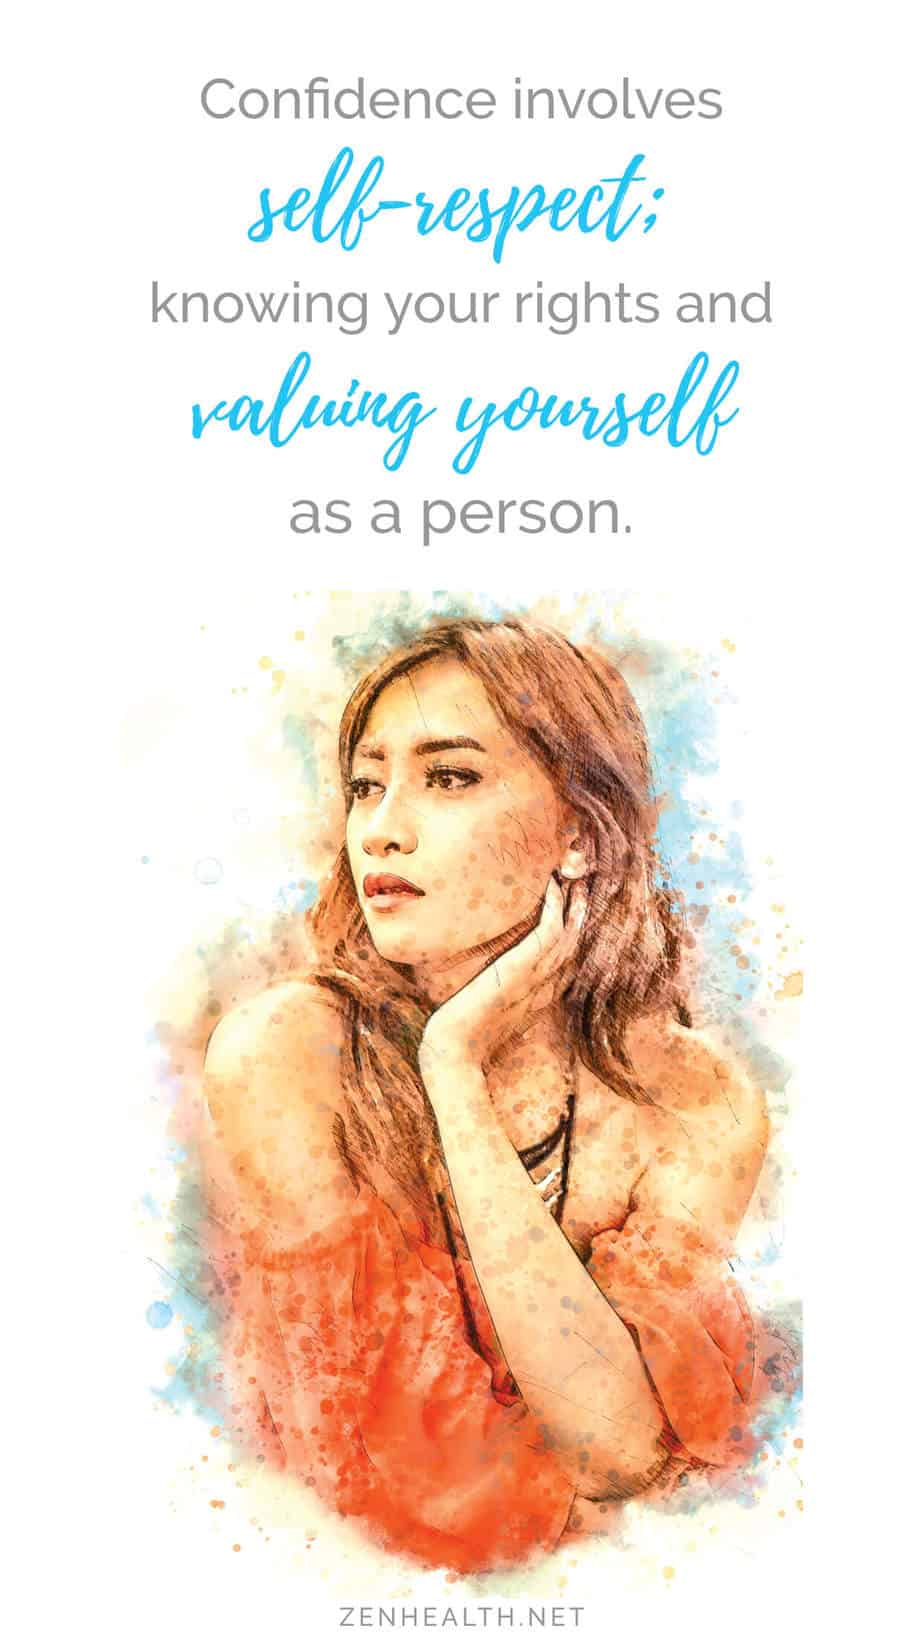 Confidence involves self-respect; knowing your rights and valuing yourself as a person.